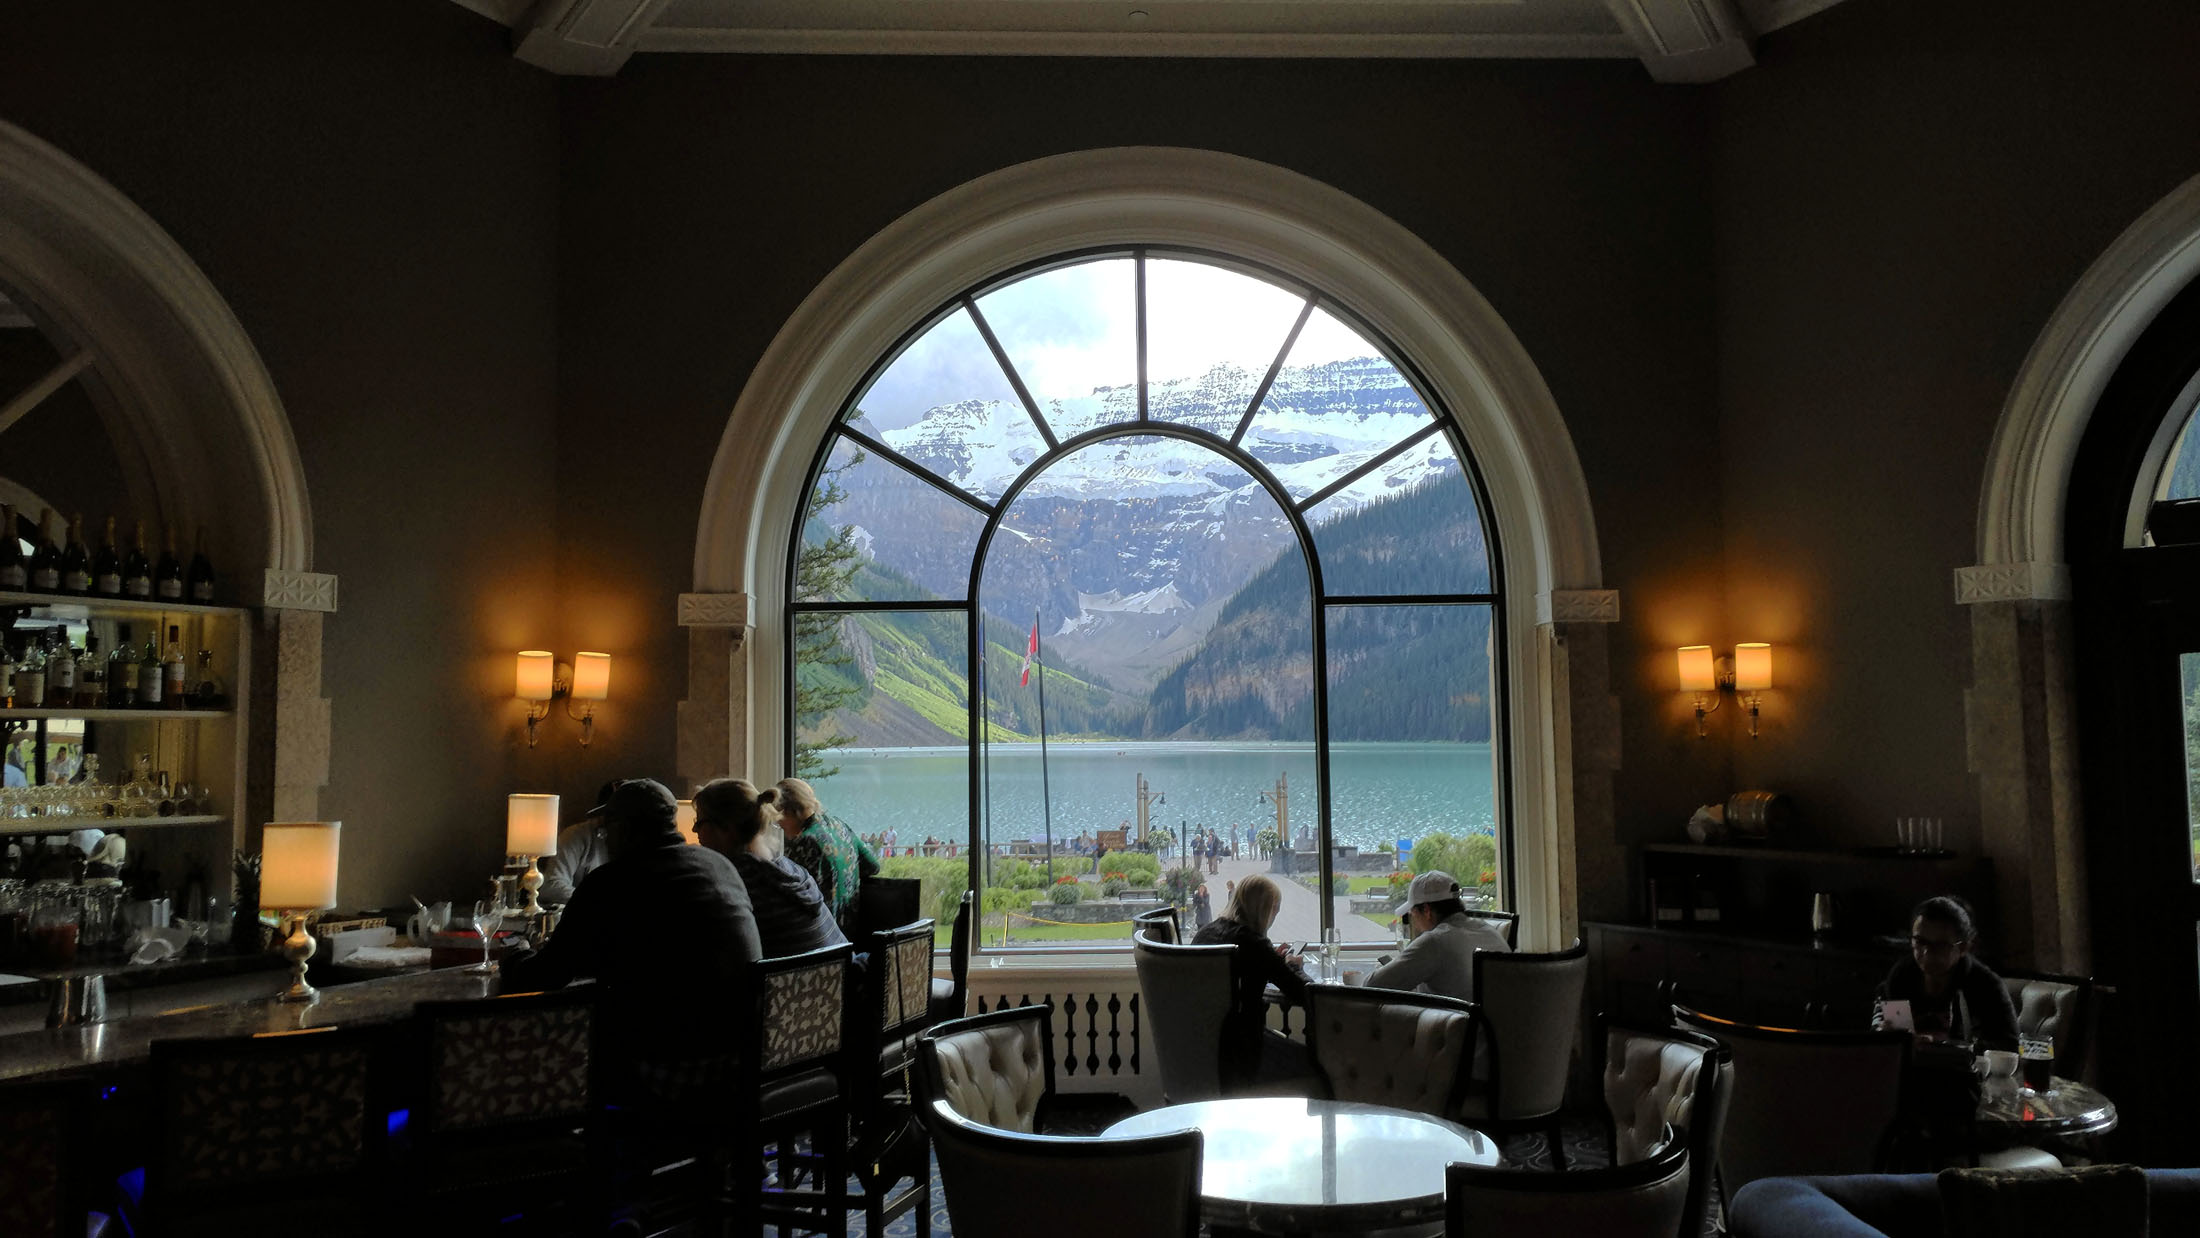 The Lakeside Lounge at the Lake Louise Fairmont Chateau is the perfect place for Happy Hour after summer sightseeing or winter skiing. (Craig Davis/craigslegztravels.com)